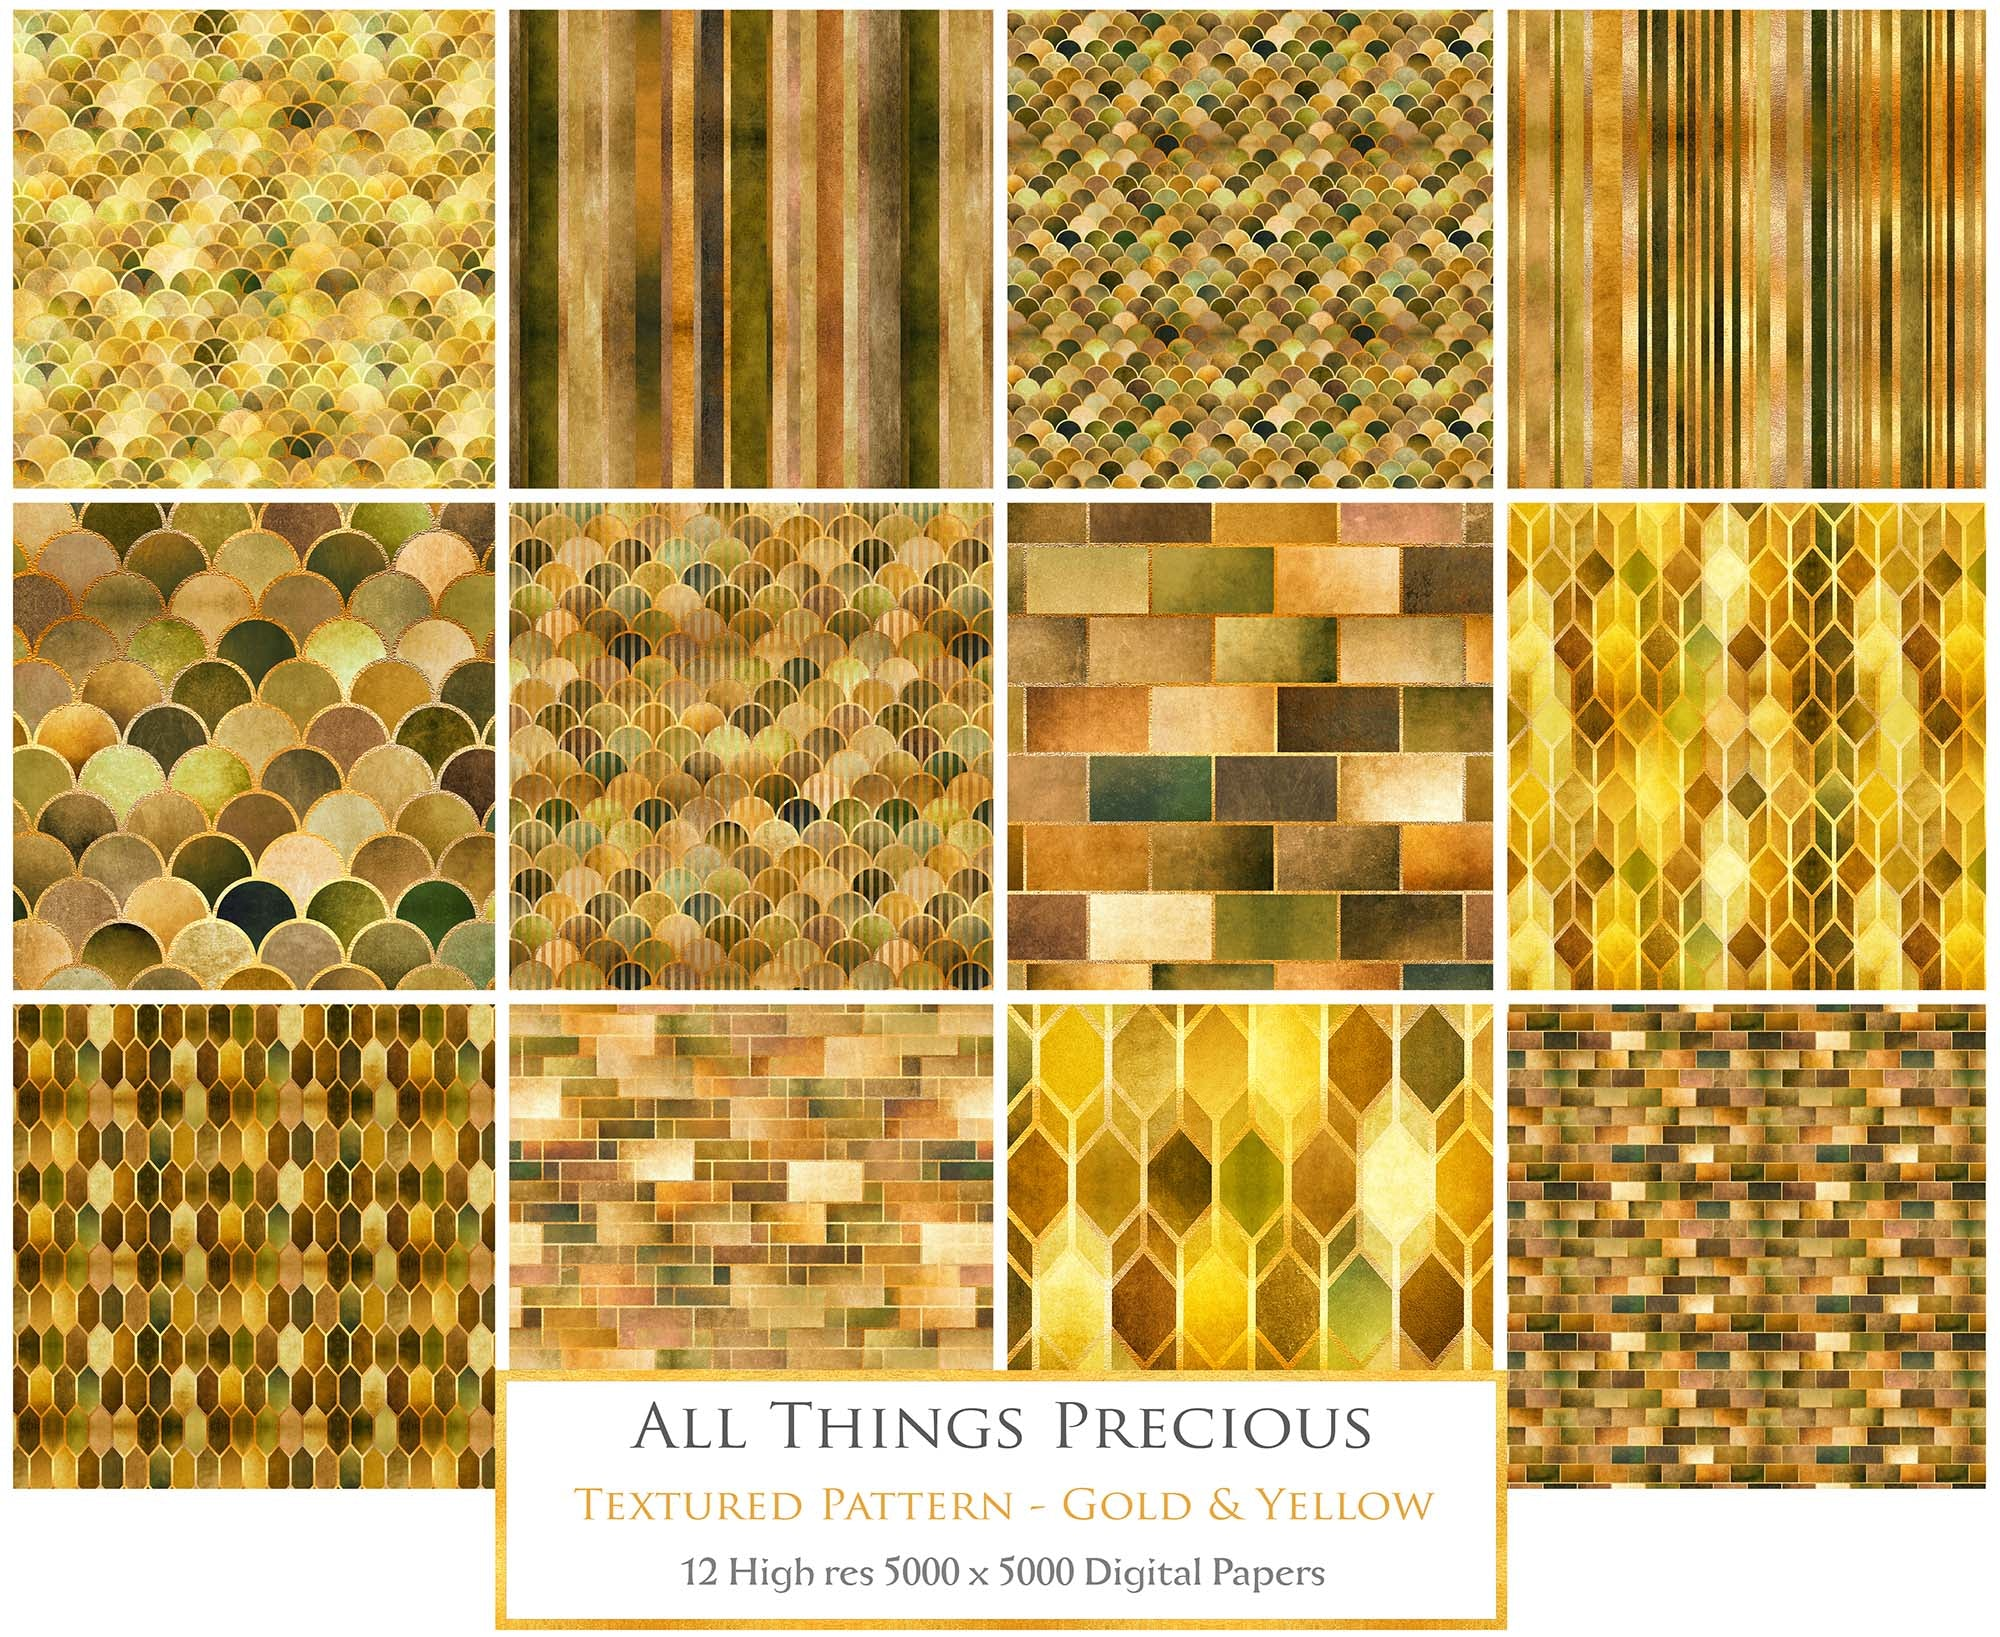 TEXTURED PATTERN Gold & Yellow - Digital Papers